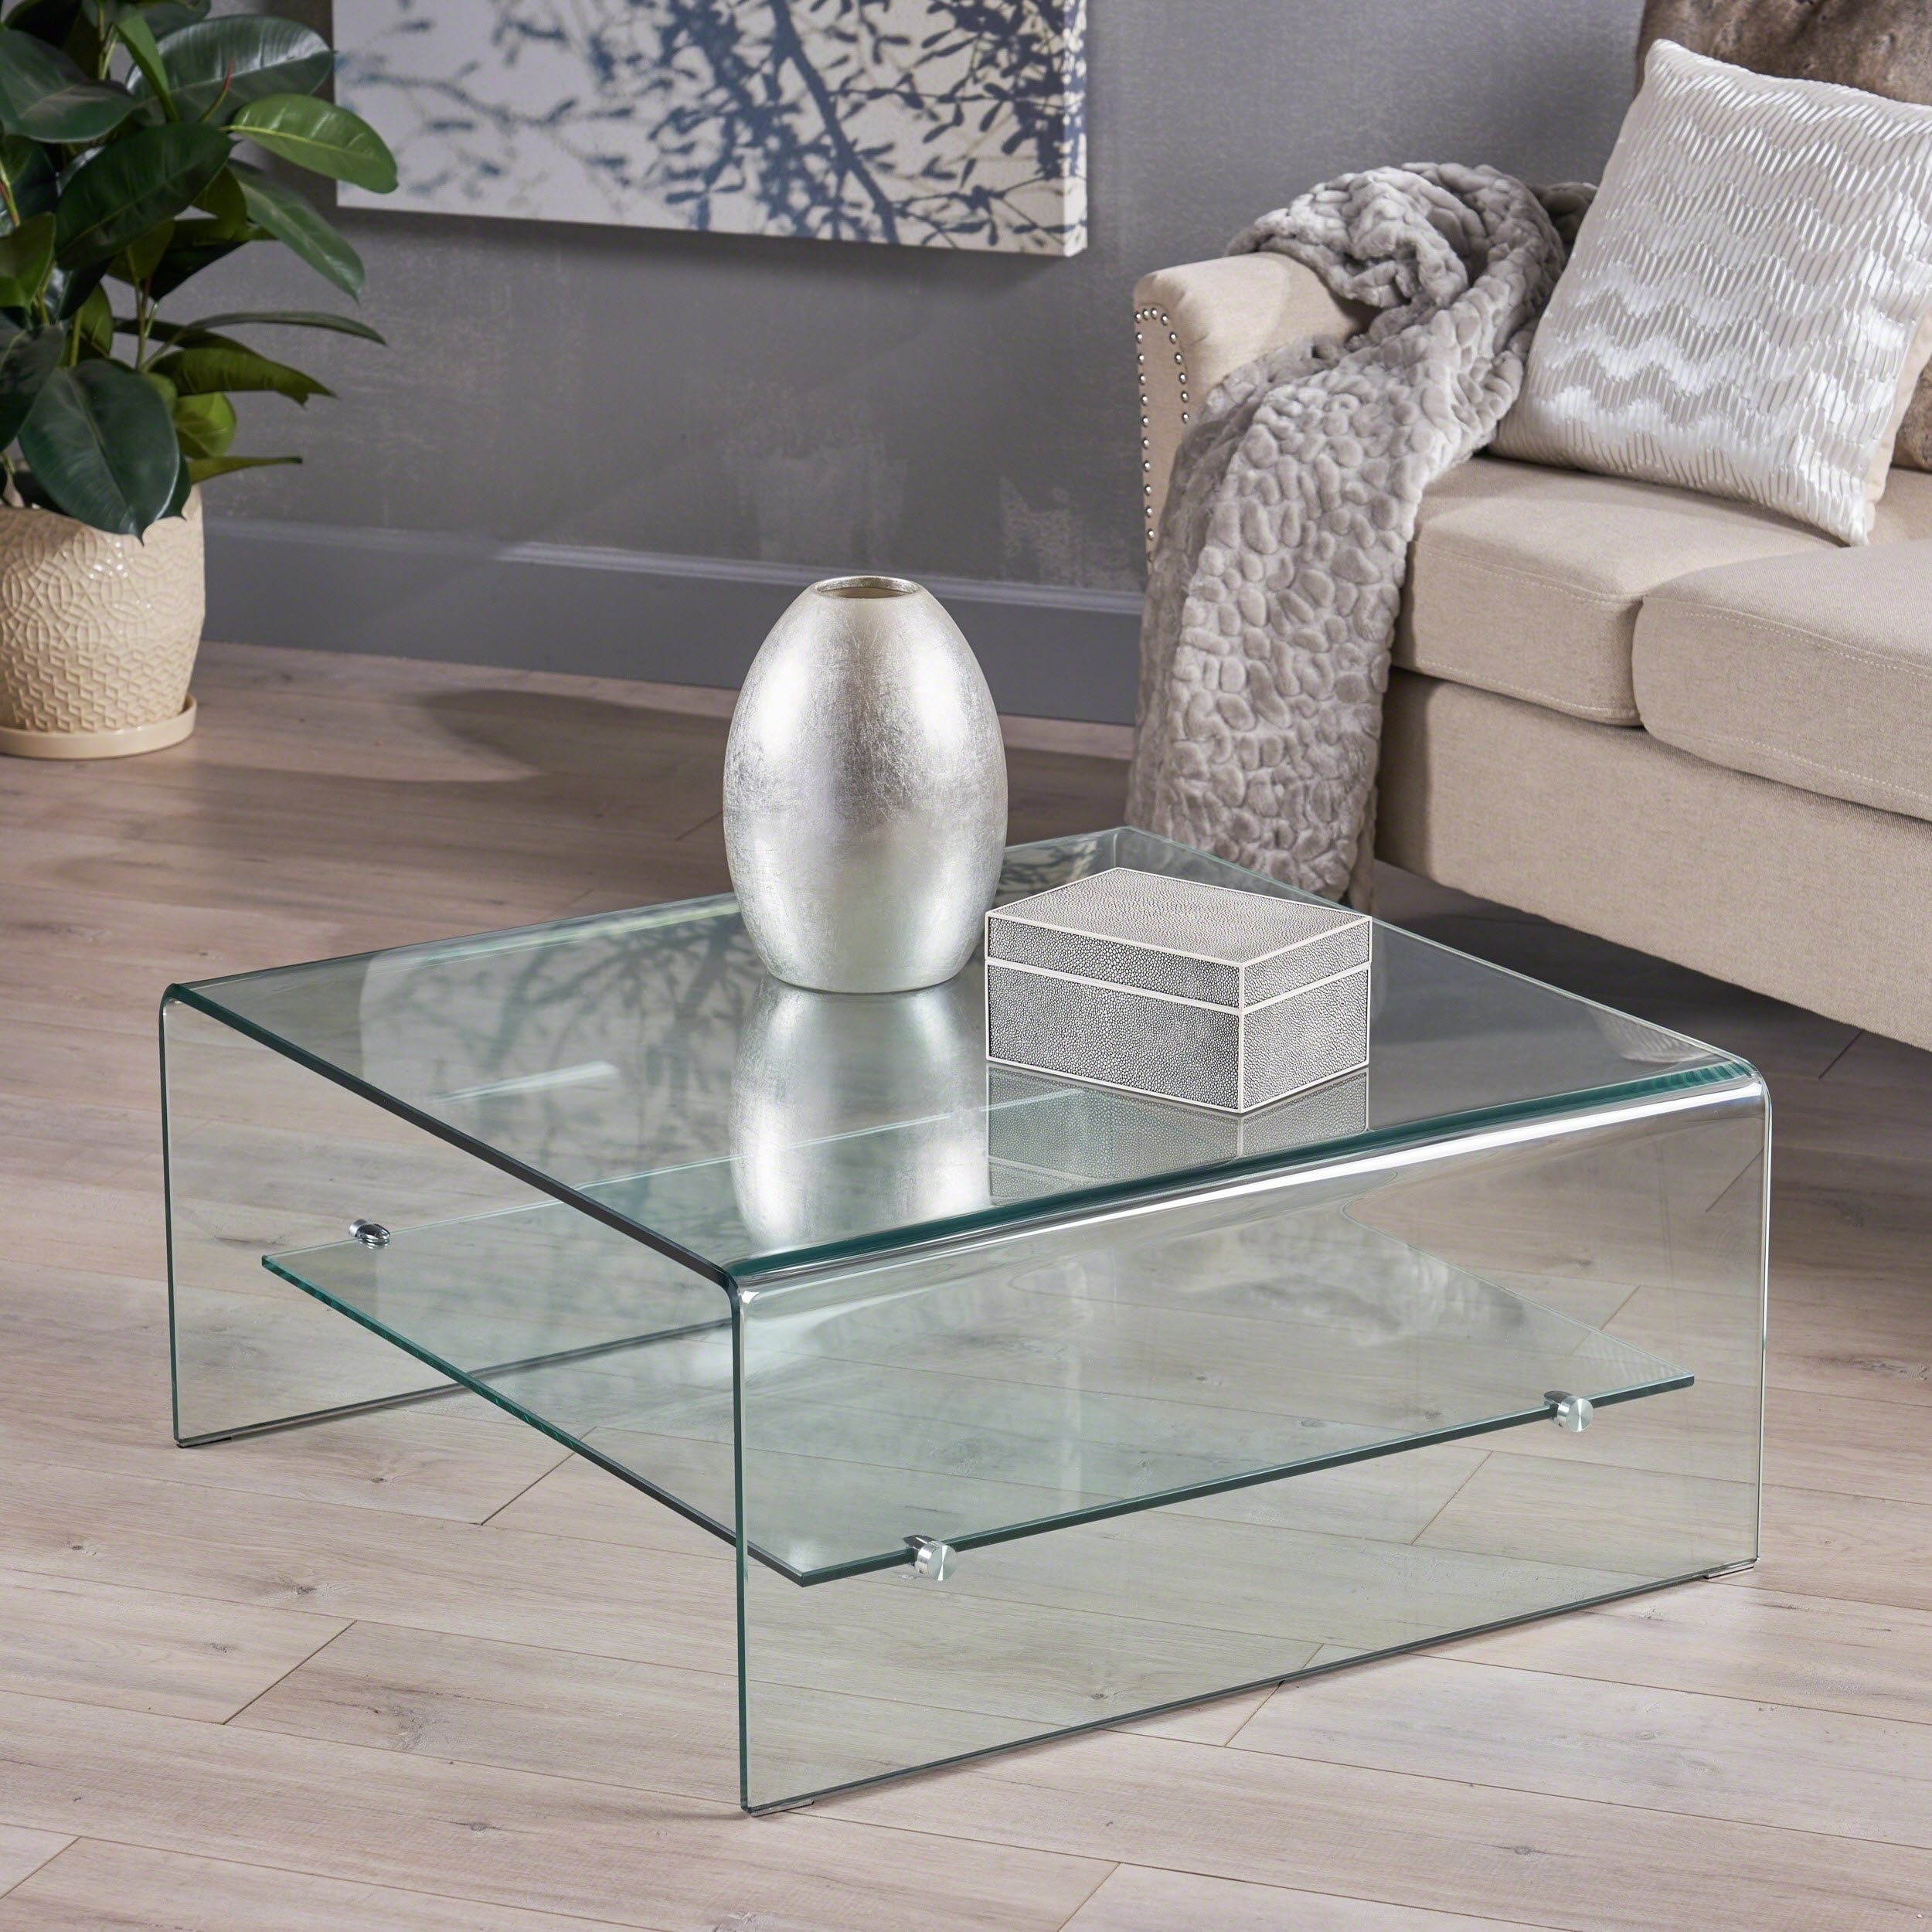 ramona square glass coffee table with shelf by christopher knight home